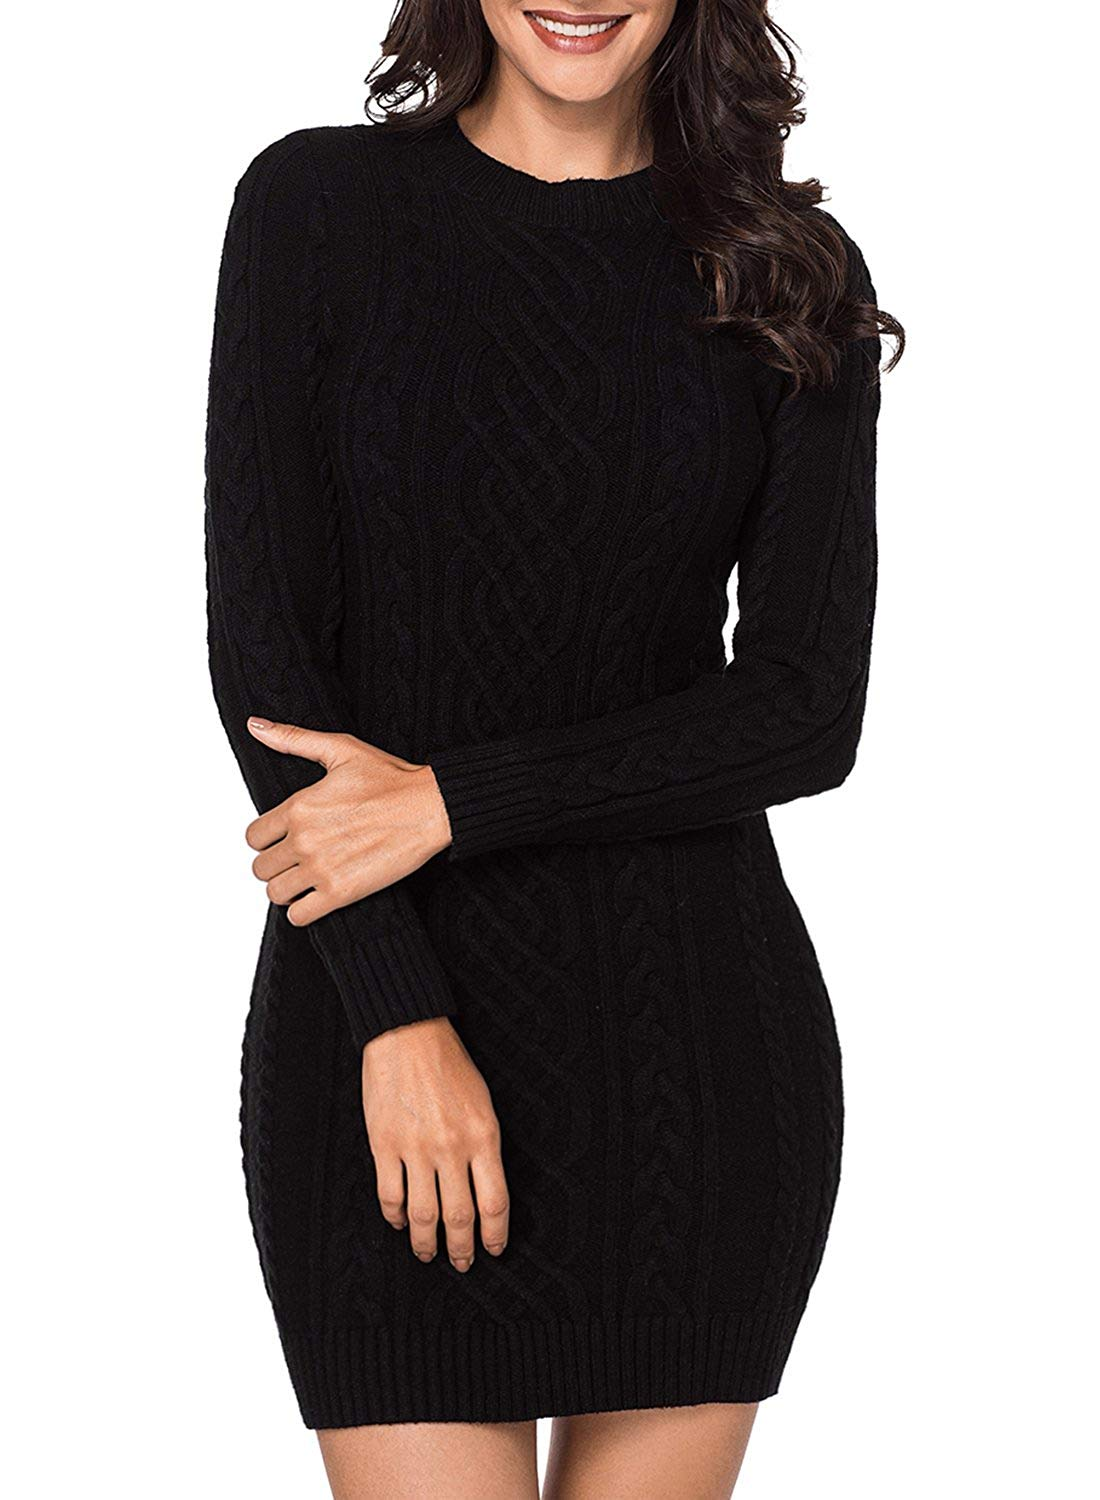 921b79a12b Get Quotations · LOSRLY Women Crew Neck Long Sleeve Cable Knit Bodycon Sweater  Midi Dress